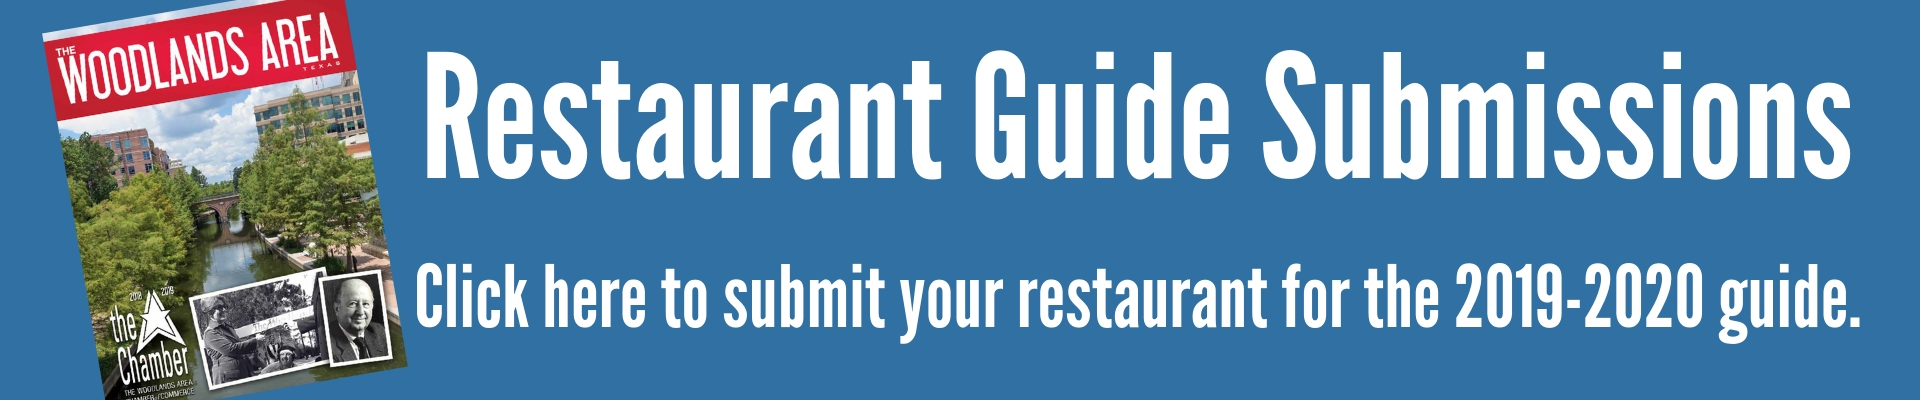 Restaurant-Guide-Button.png